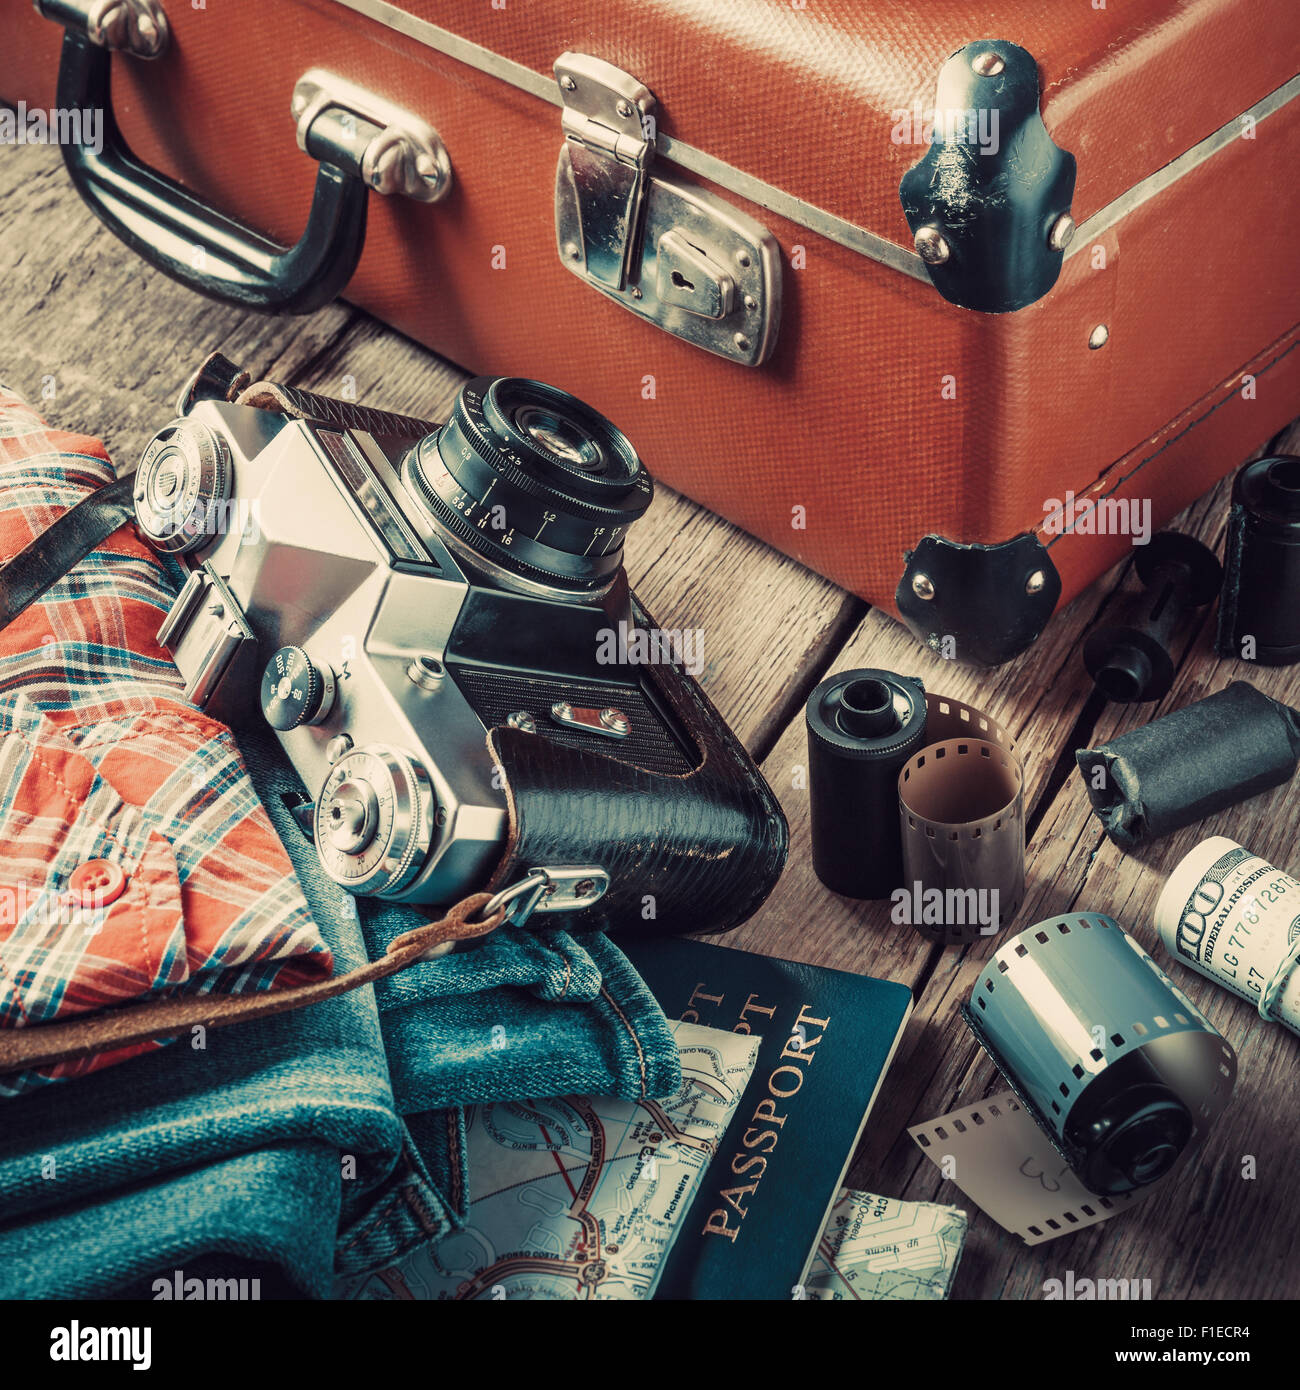 Old travel suitcase, clothing, map, filmstrip and retro film camera on wooden background. Vintage stylized. - Stock Image